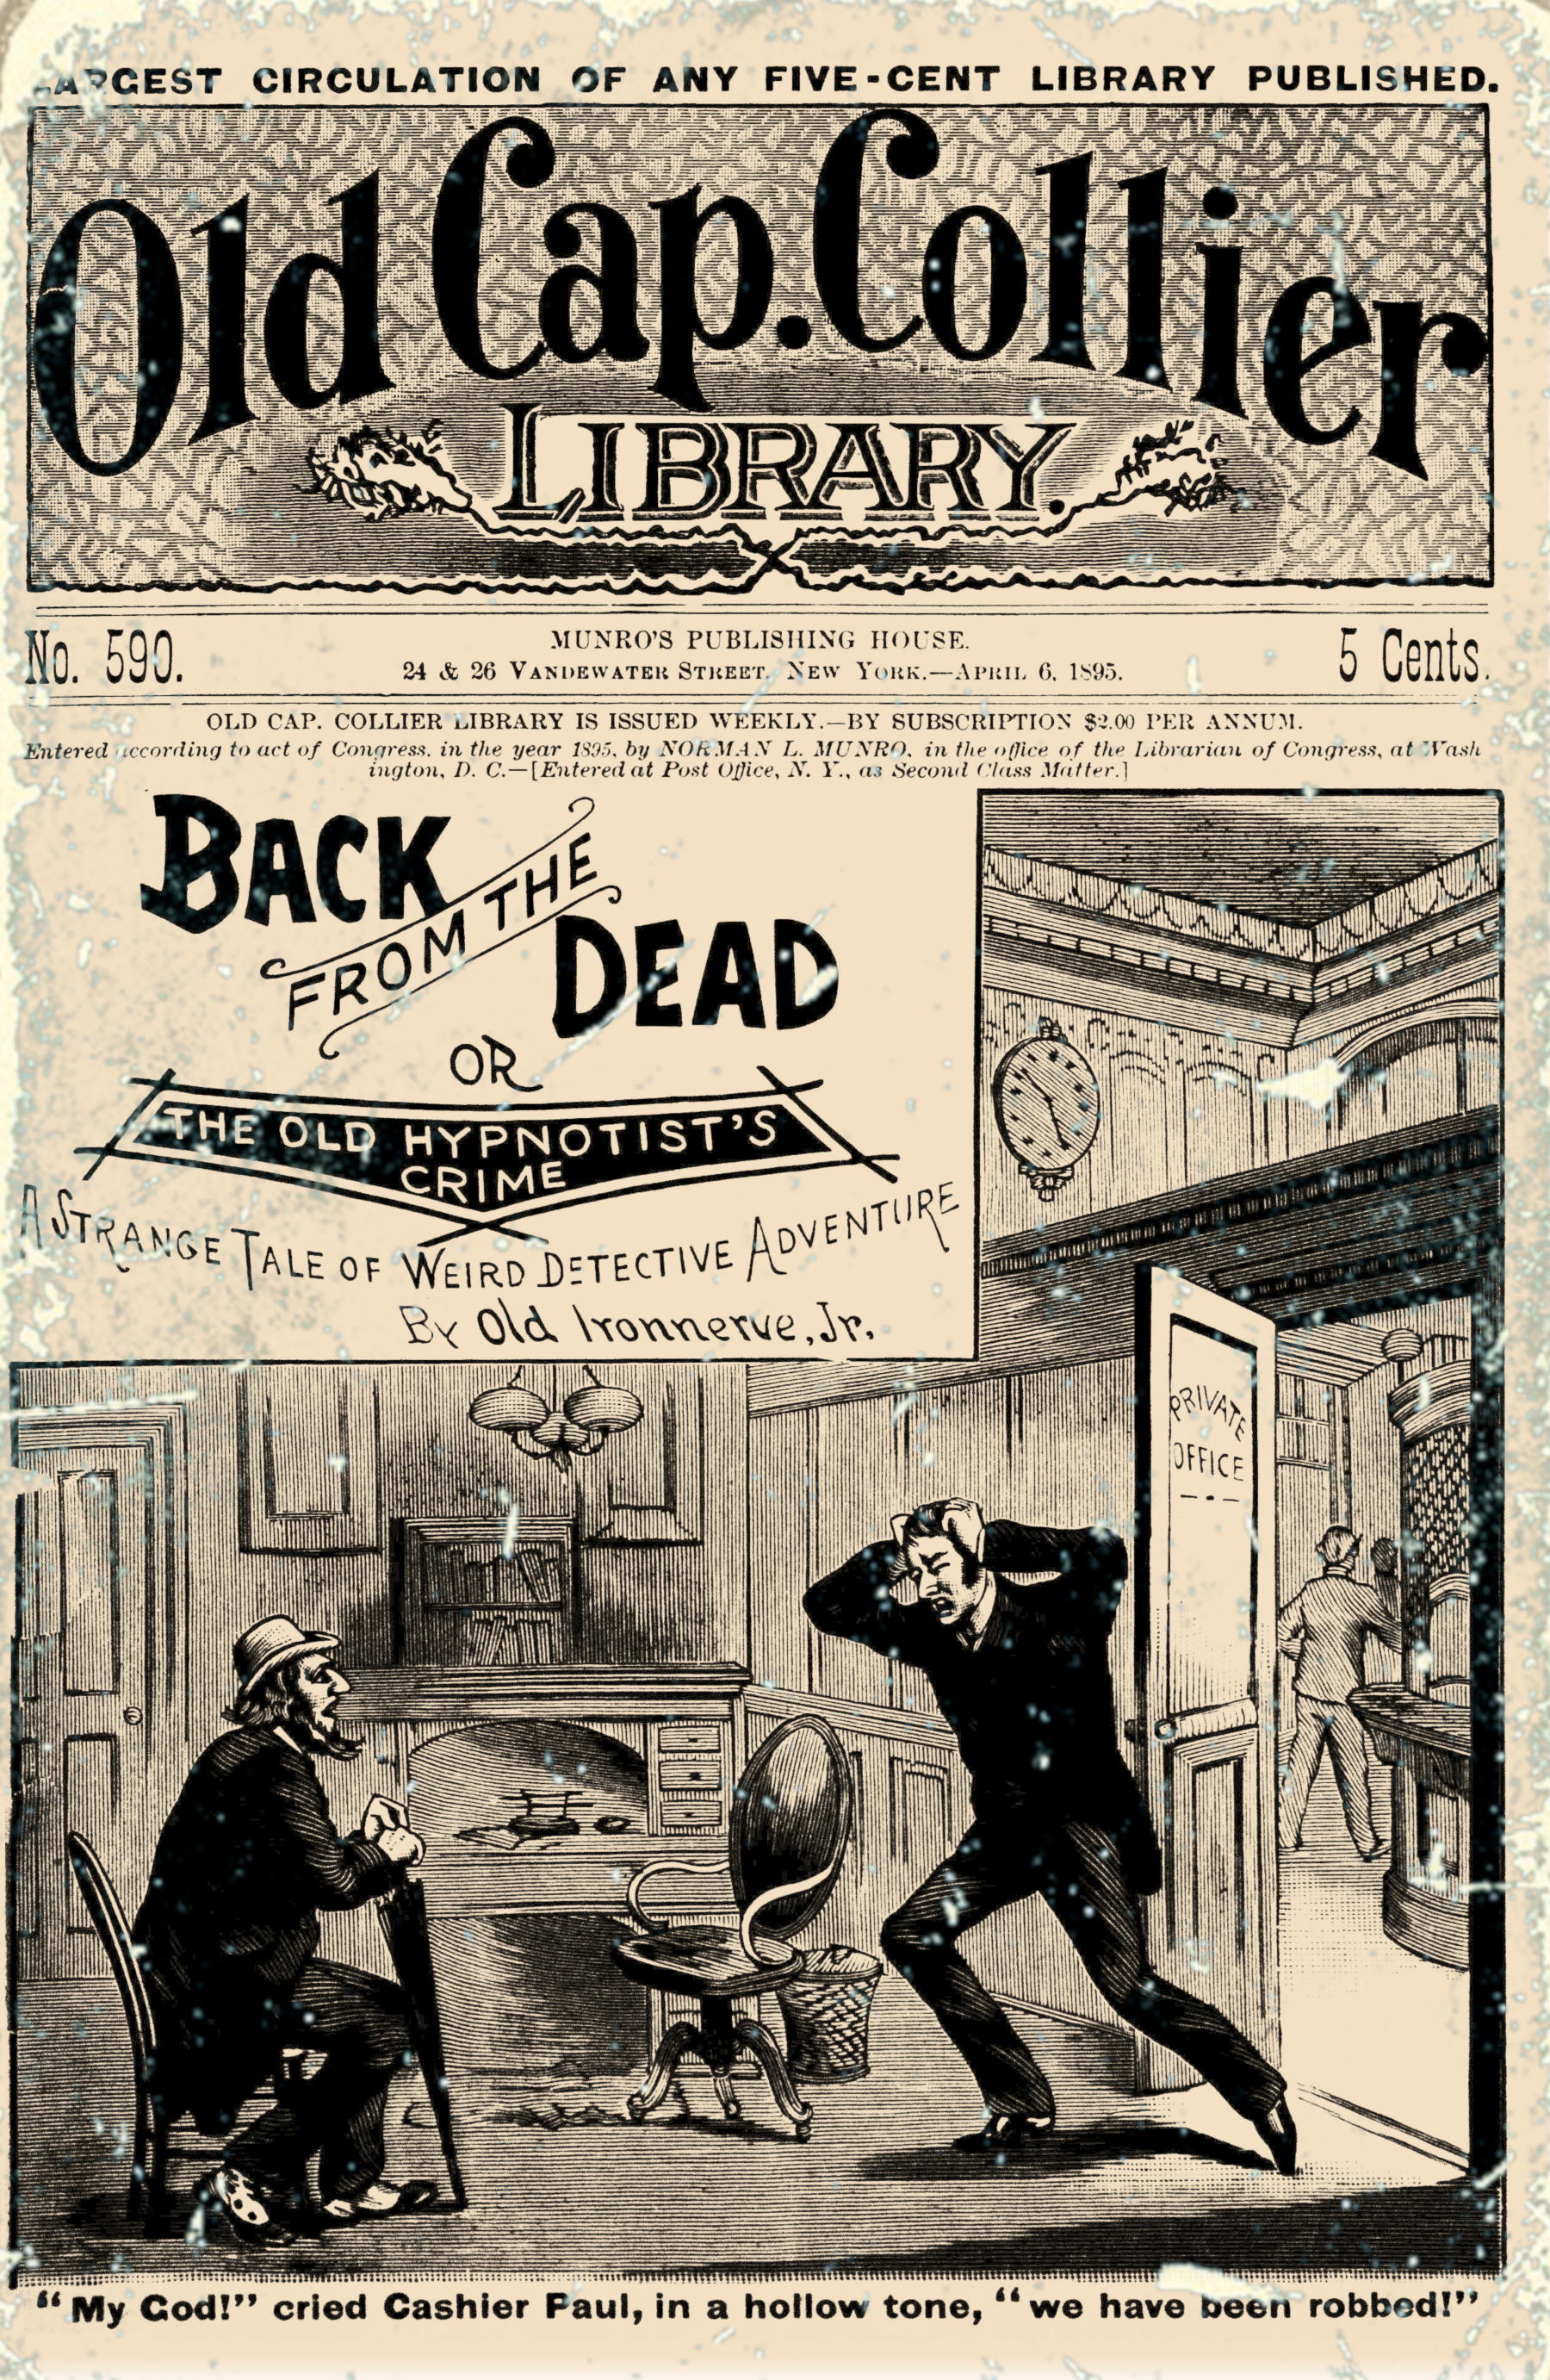 Back from the Dead by Old Ironnerve, Jr.